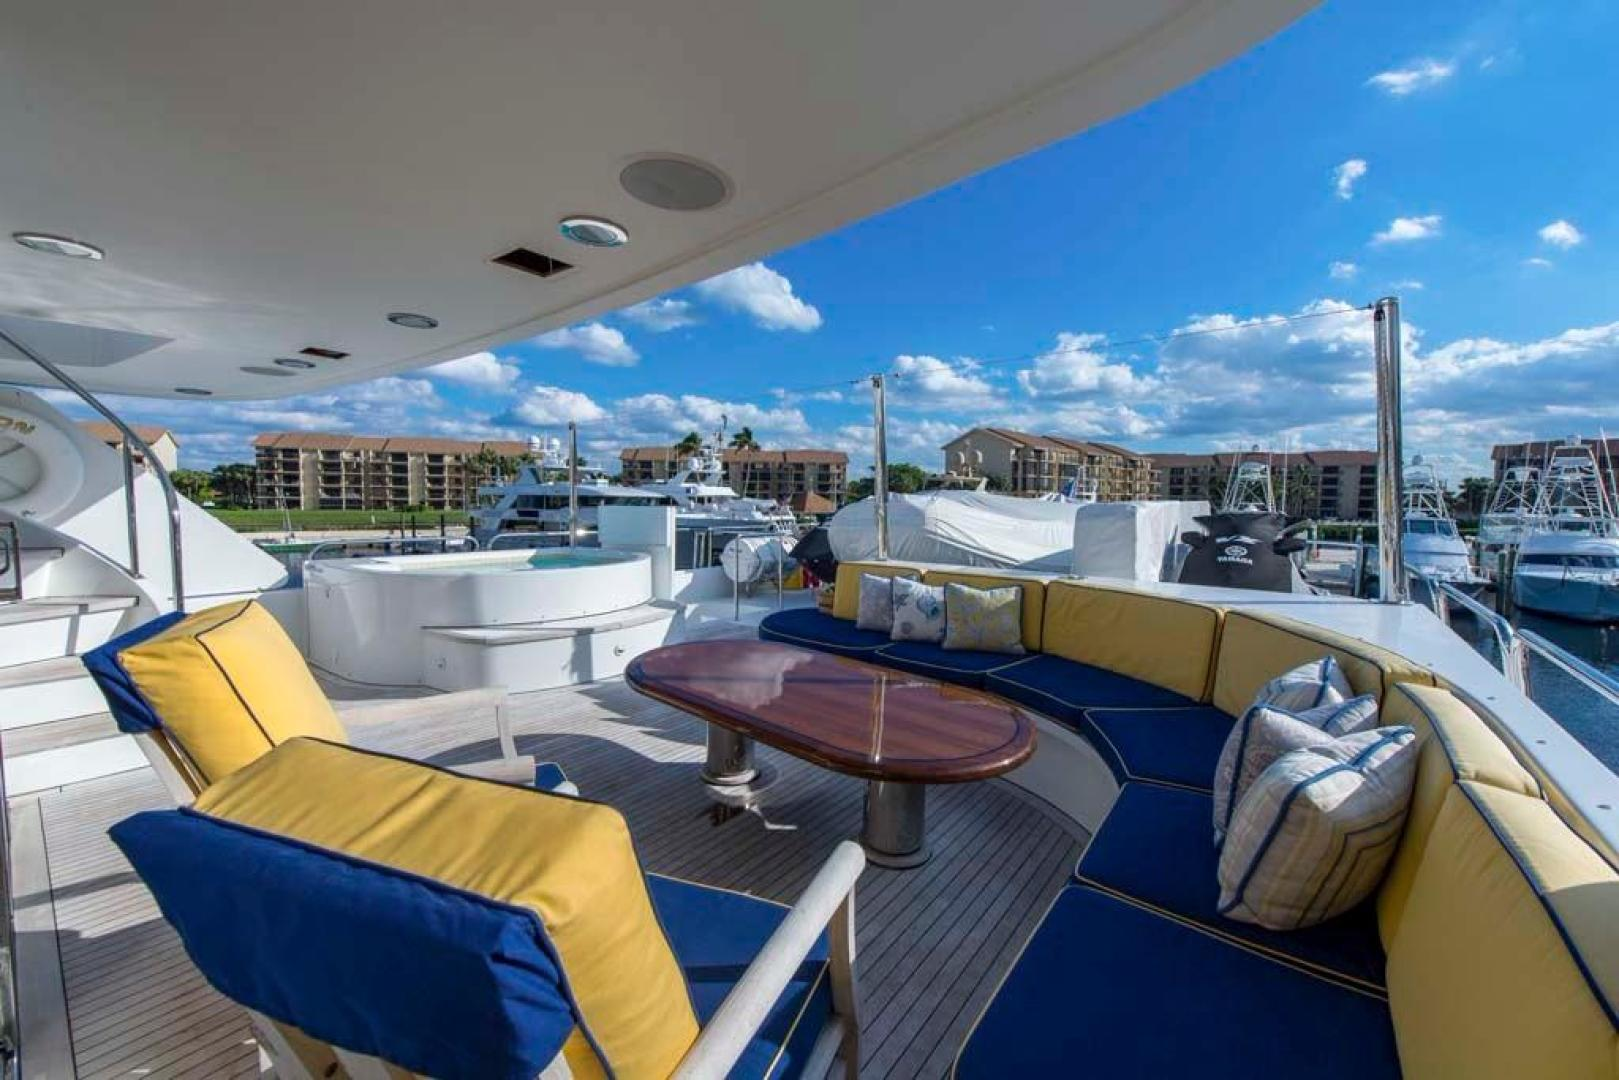 Westport-Tri-Deck-2003-Vision-Jupiter-Florida-United-States-Sky-Lounge-Aft-Deck-370721